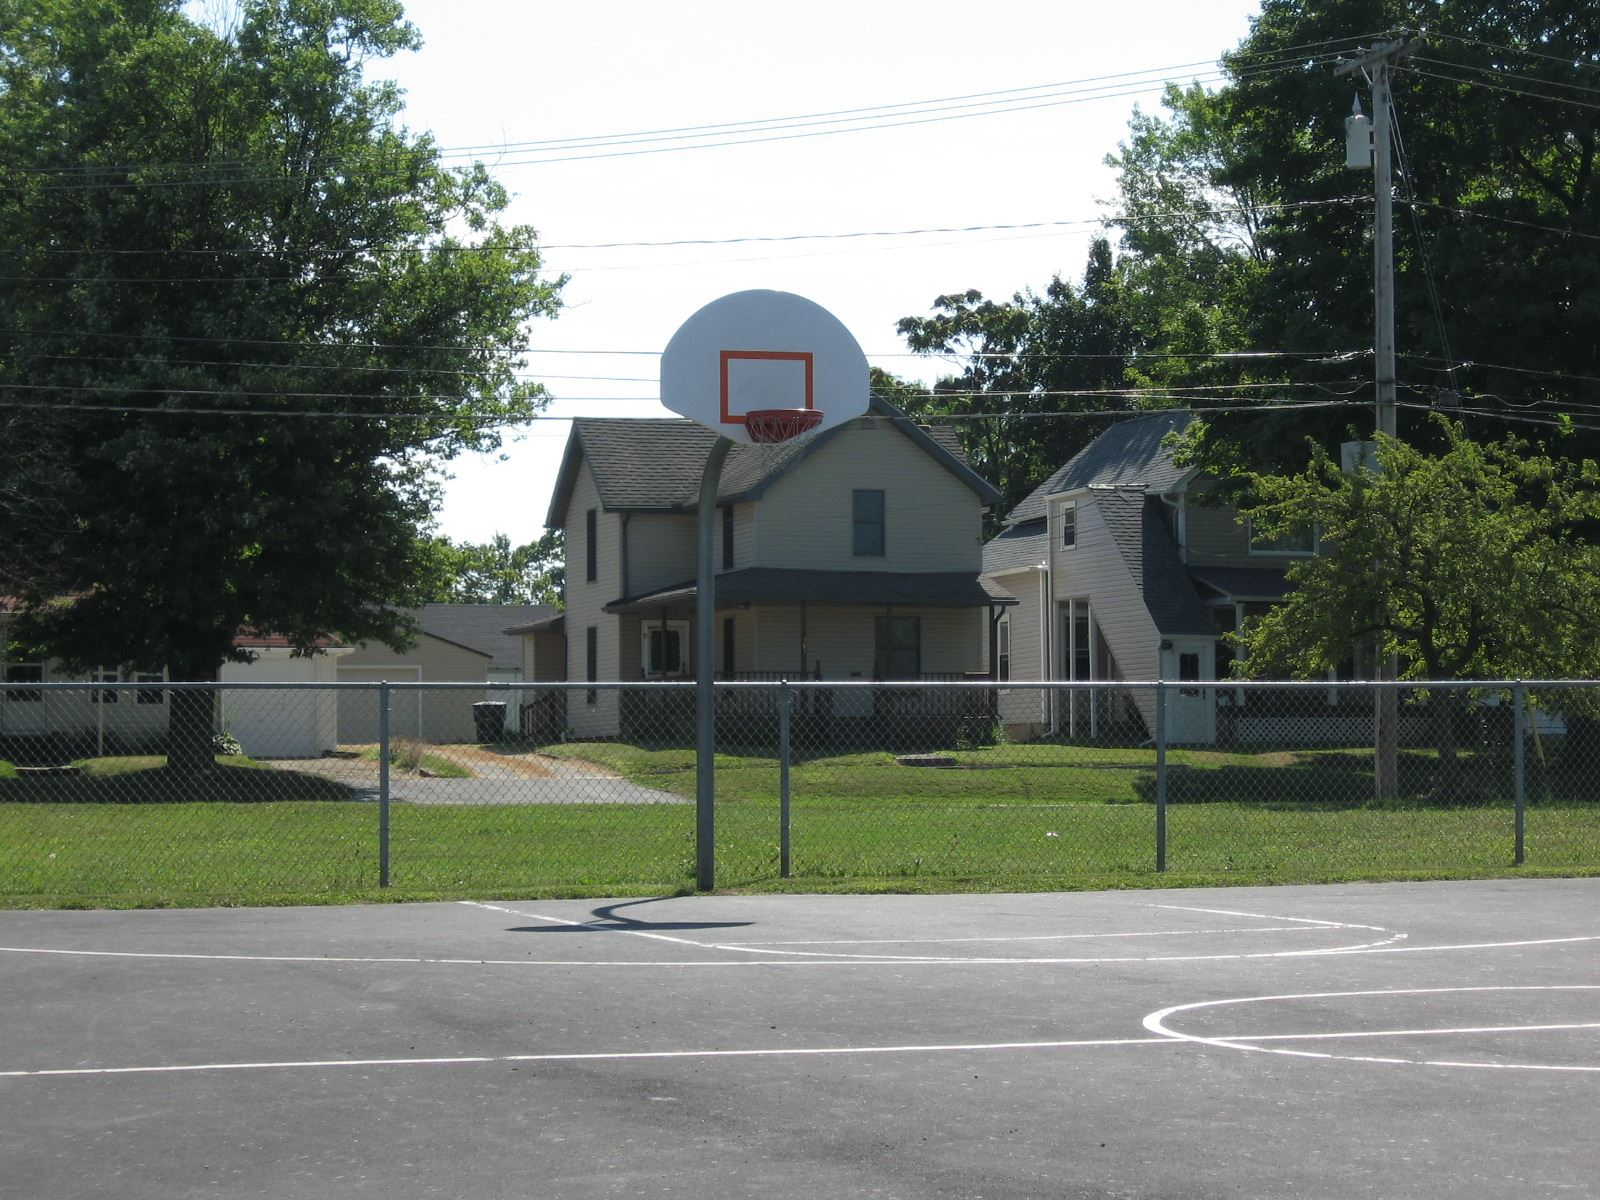 Franklin Park Basketball Court